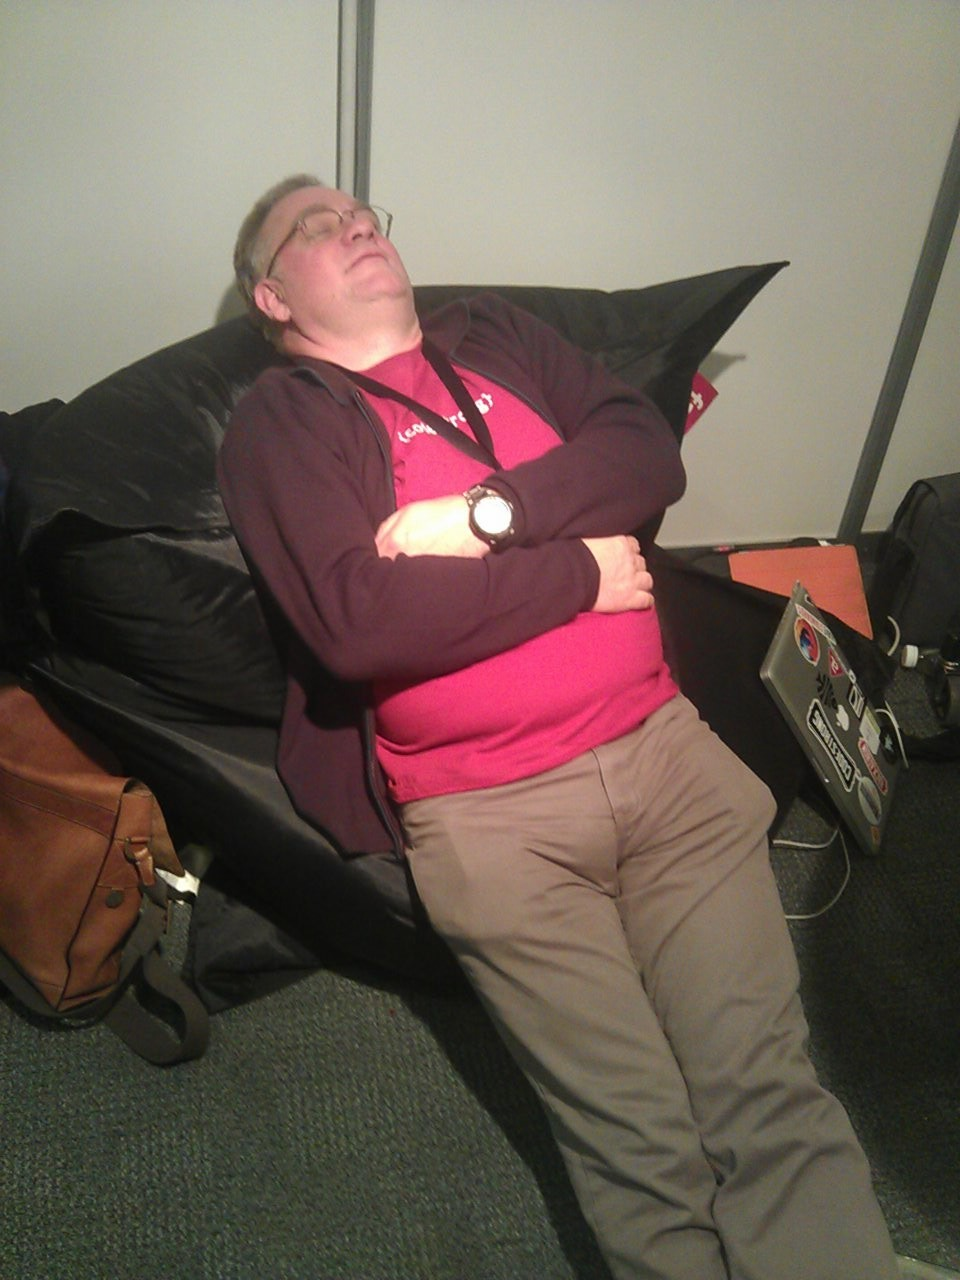 london-meetup-trevor-sleeping1.jpg